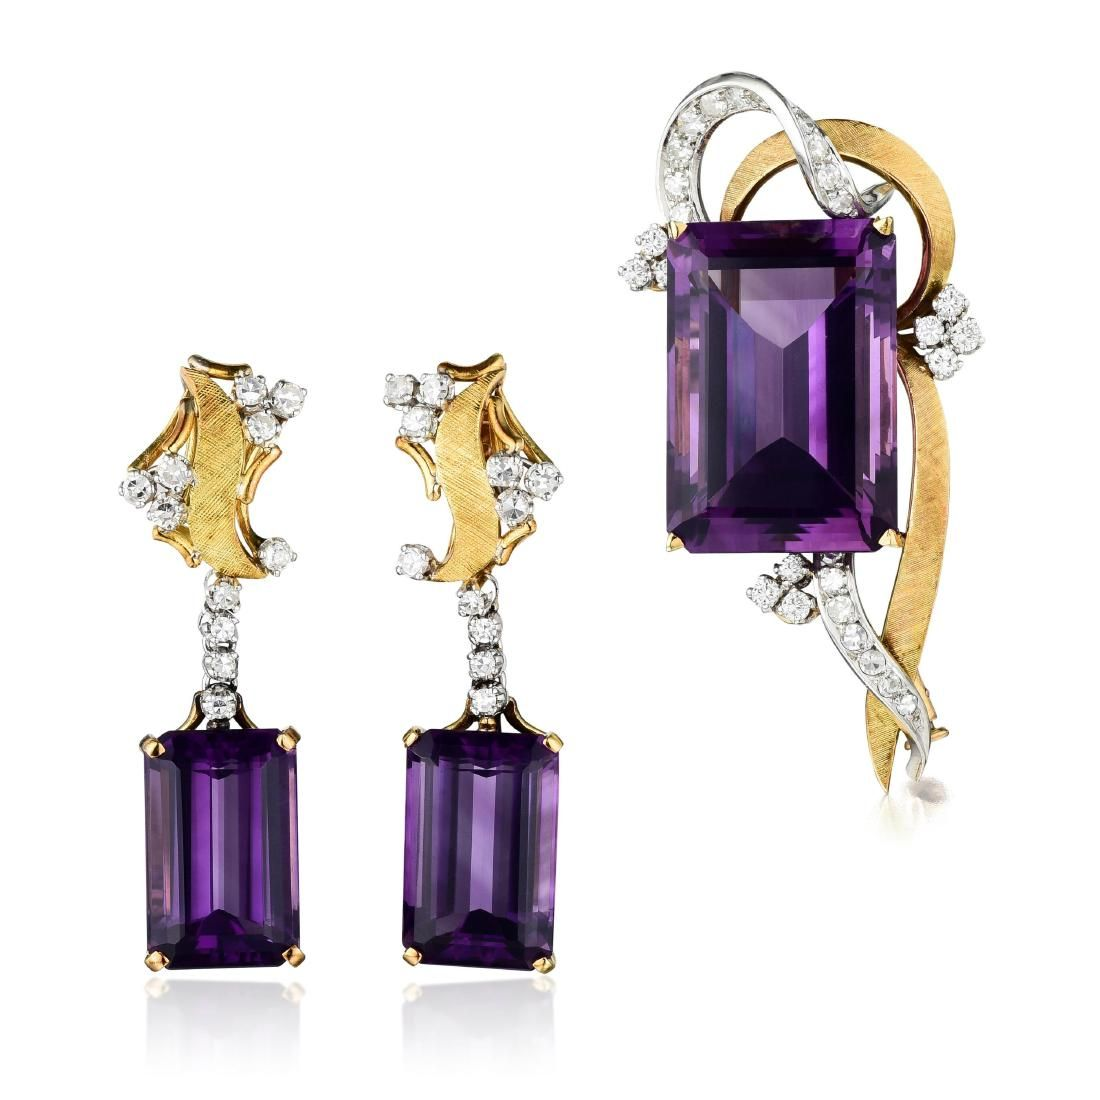 A Set of Platinum and 18K Gold Amethyst and Diamond